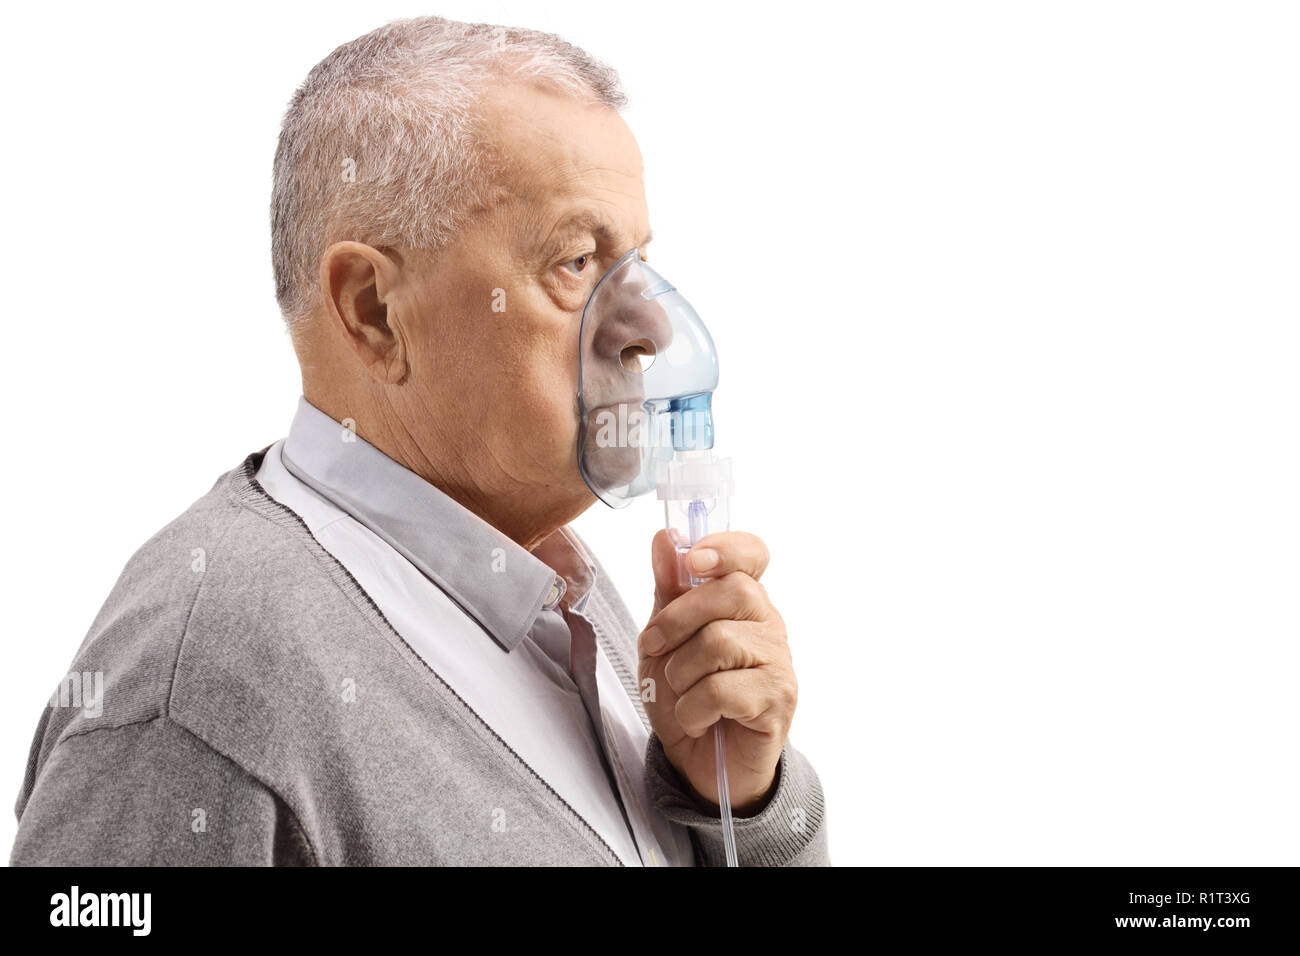 Mature man using an inhaler isolated on white background - Stock Image